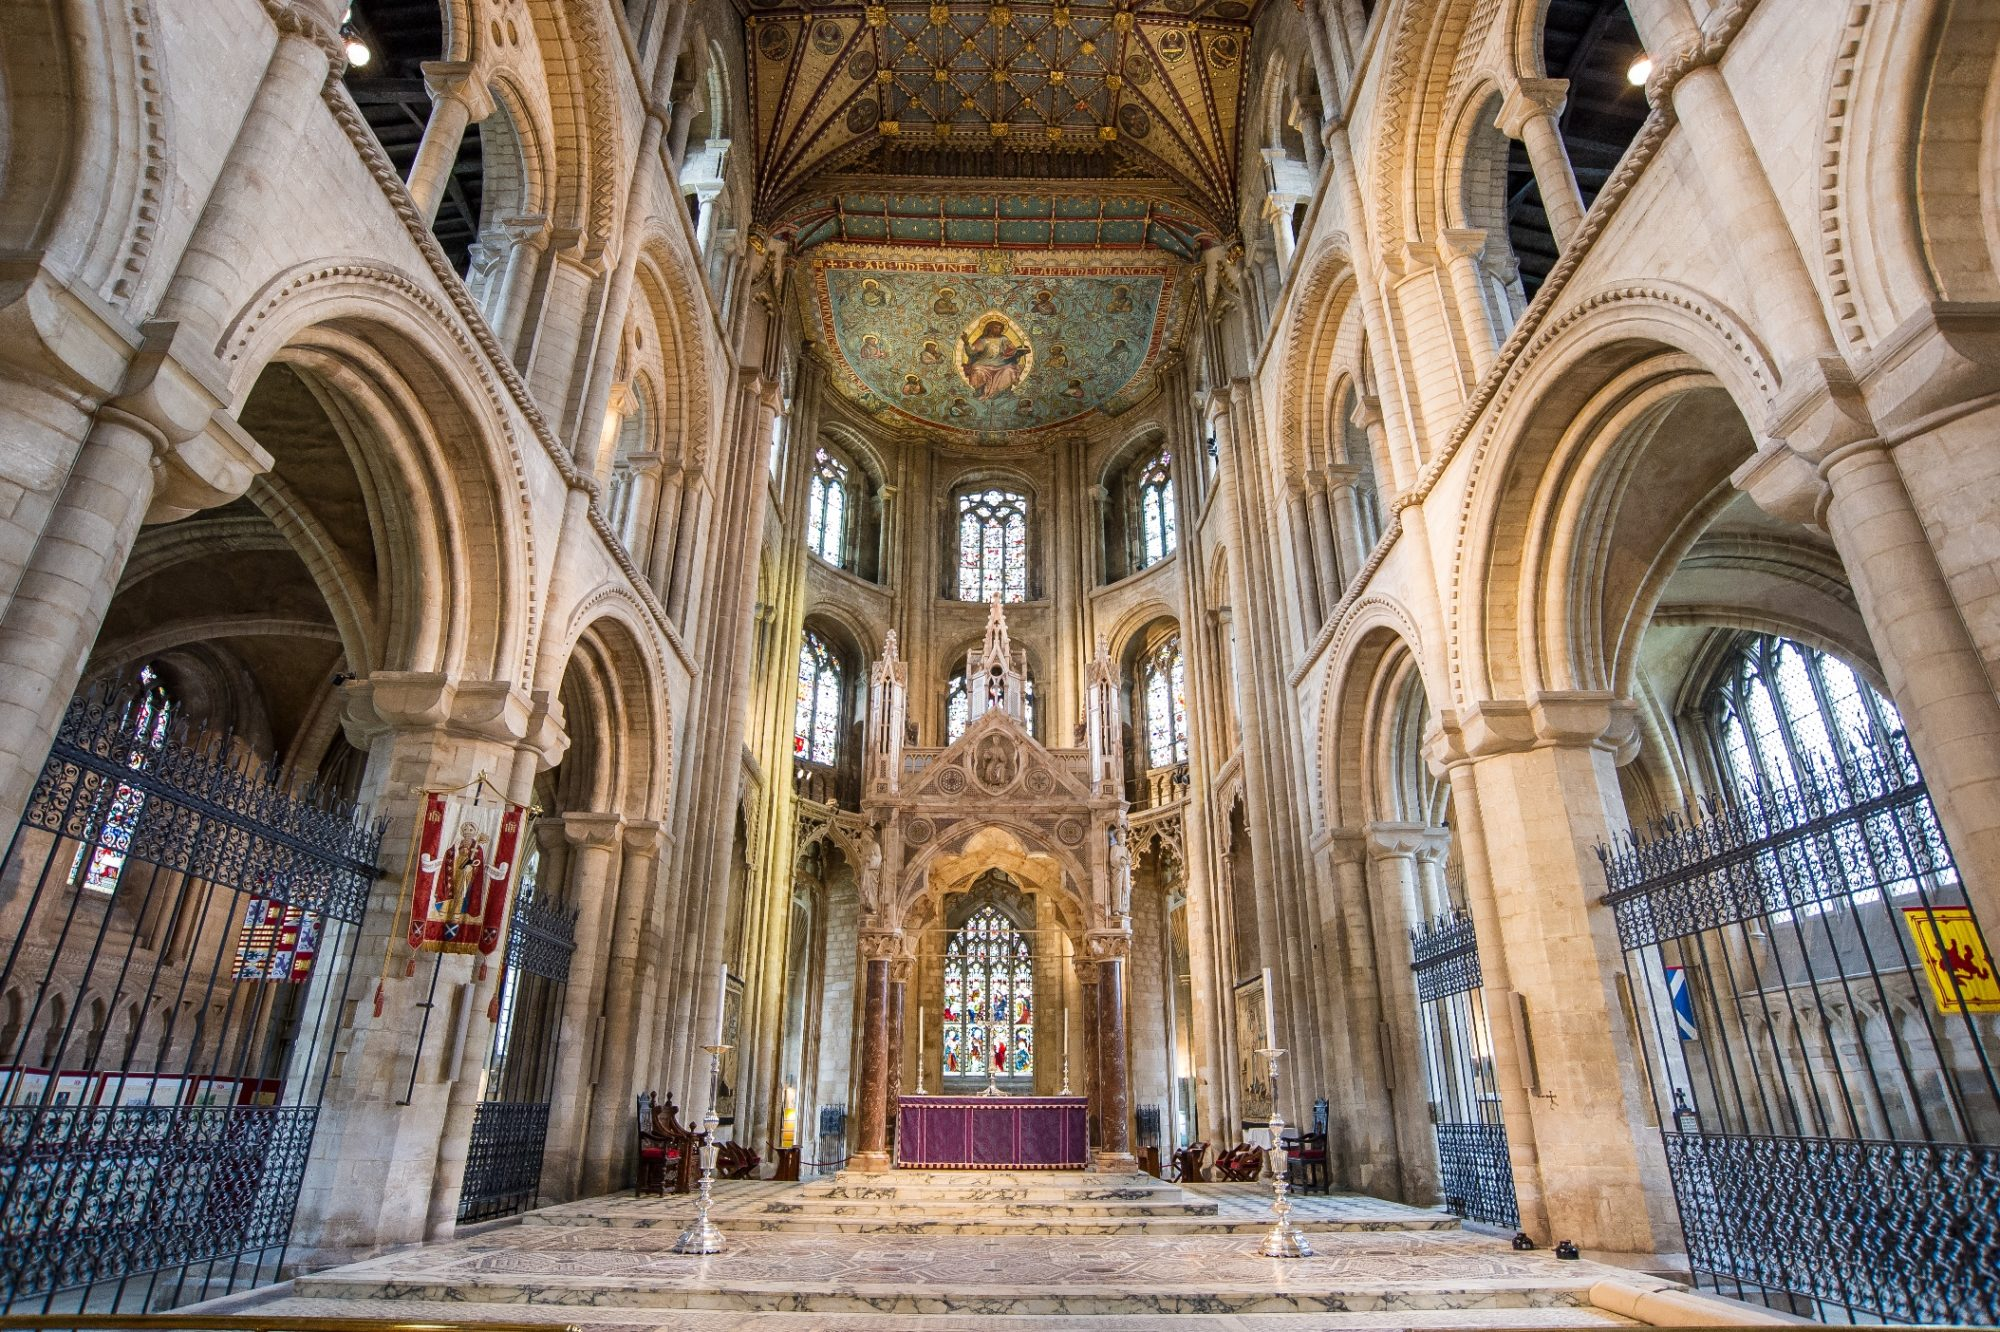 The High Altar at Peterborough Cathedral